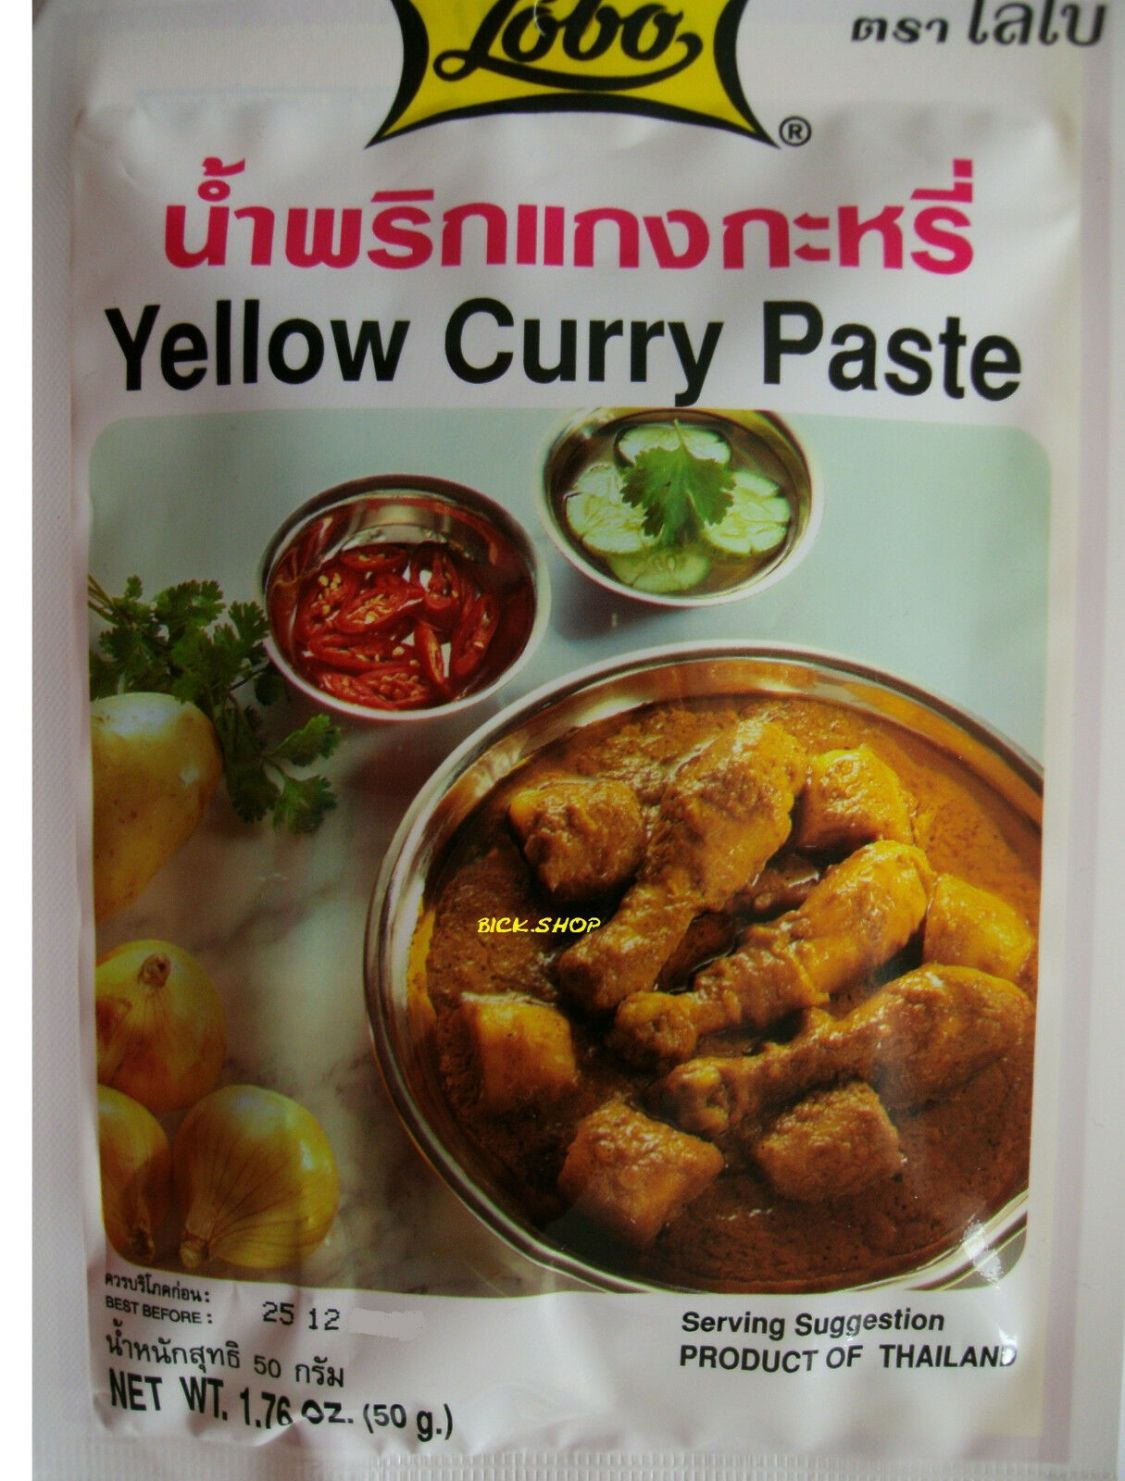 gelbe Curry Paste original Thailand yellow currypaste Asia Food gewürzpaste 50g